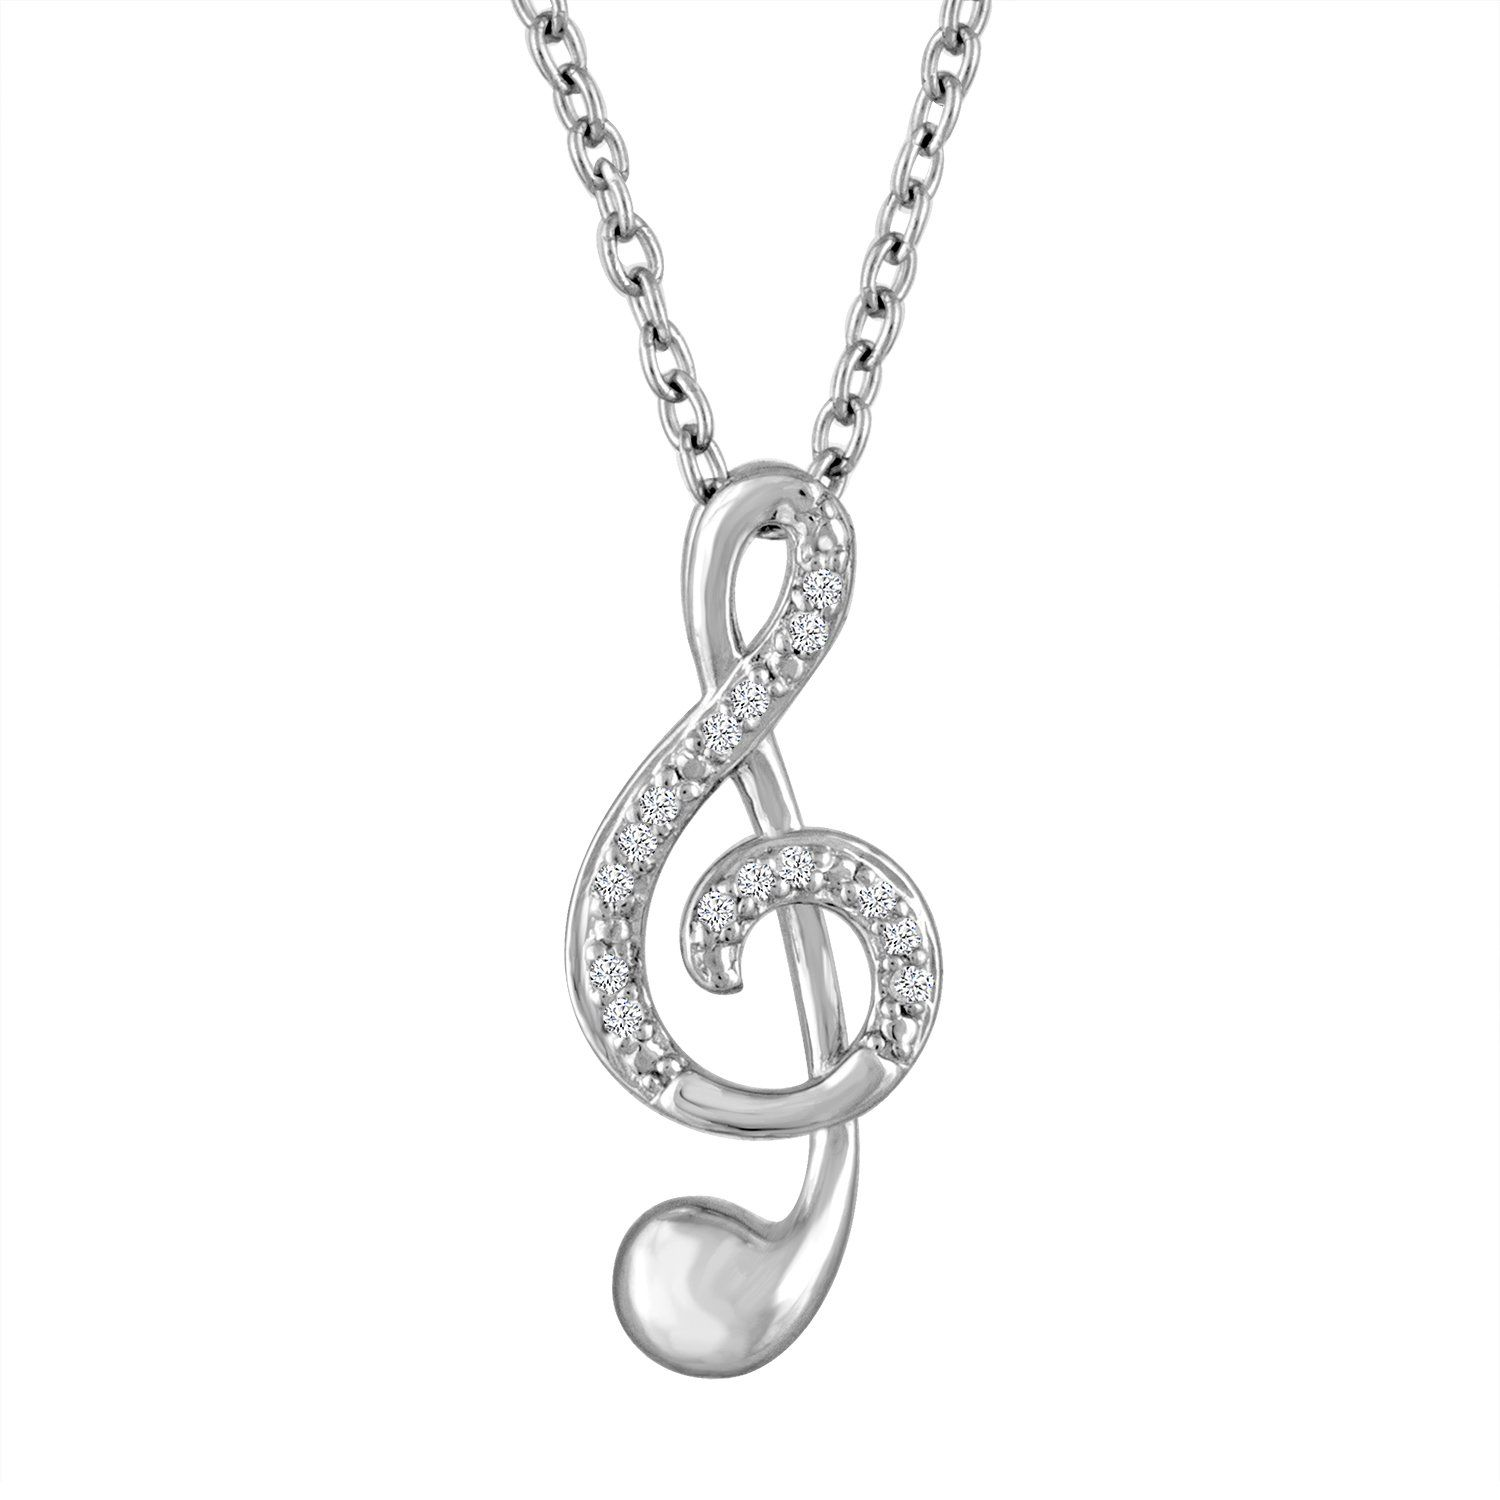 moodstone music plated rhodium chain jewelry necklace pendant igm on